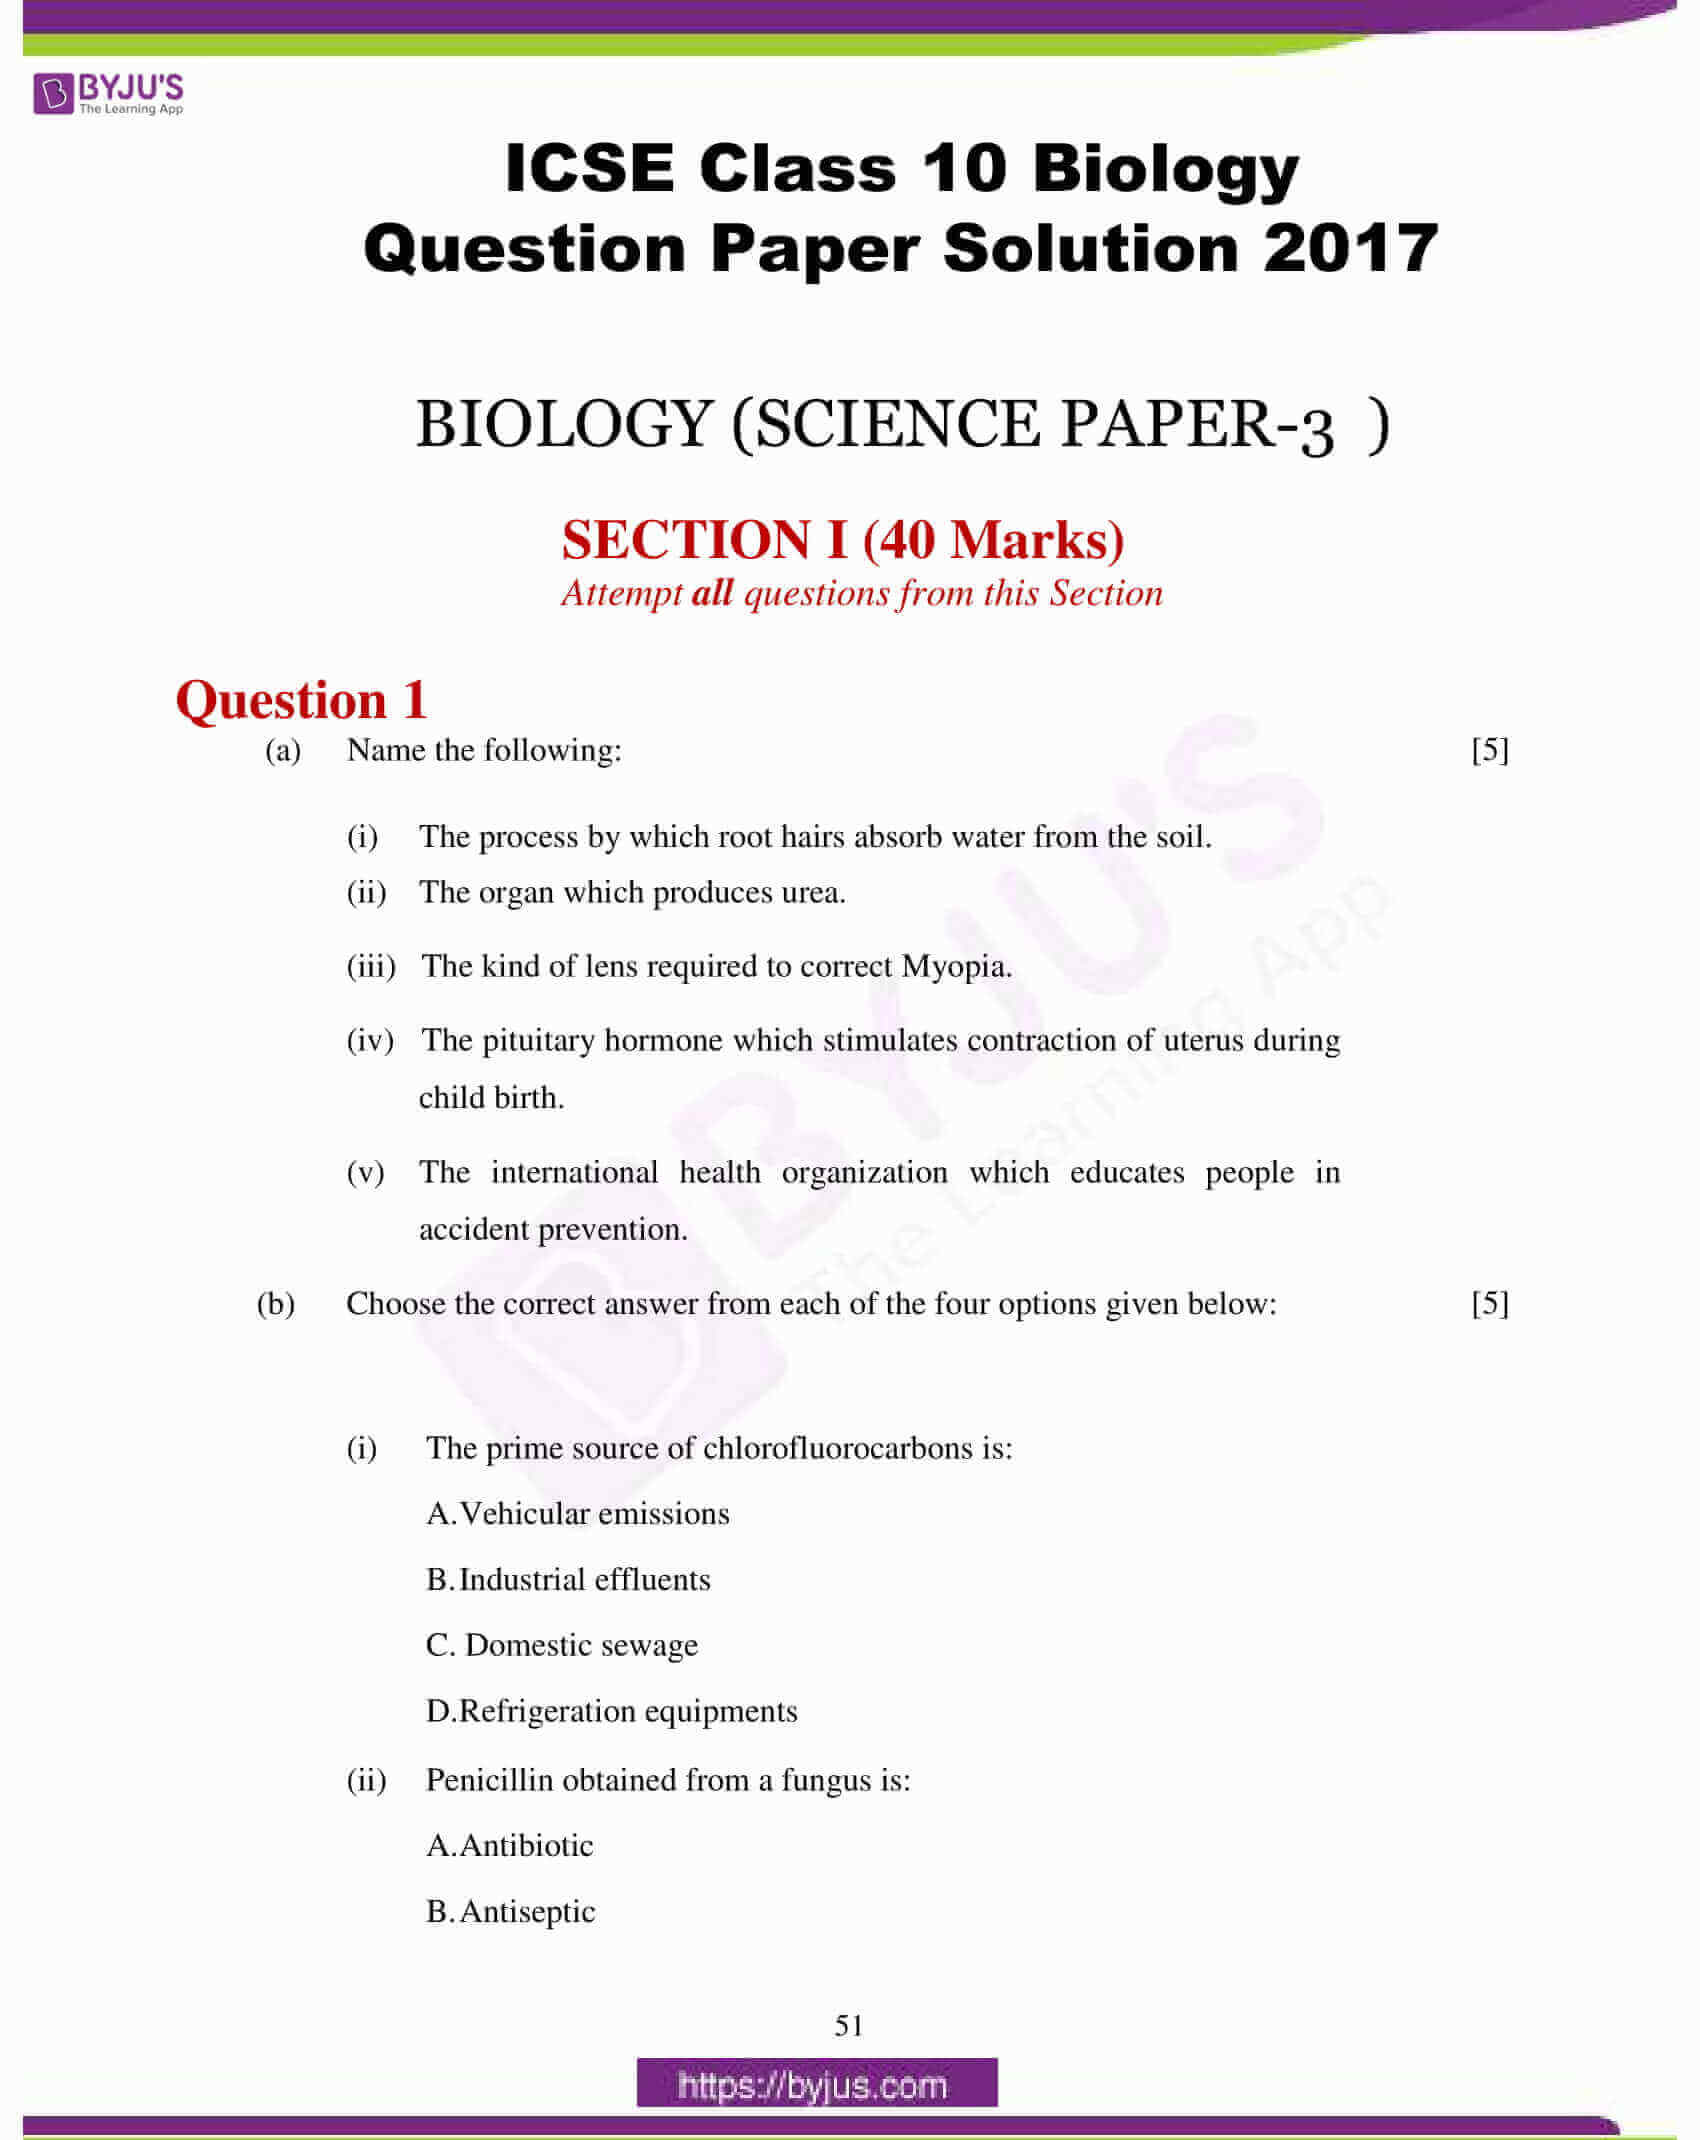 icse class 10 biology question paper solution 2017 01